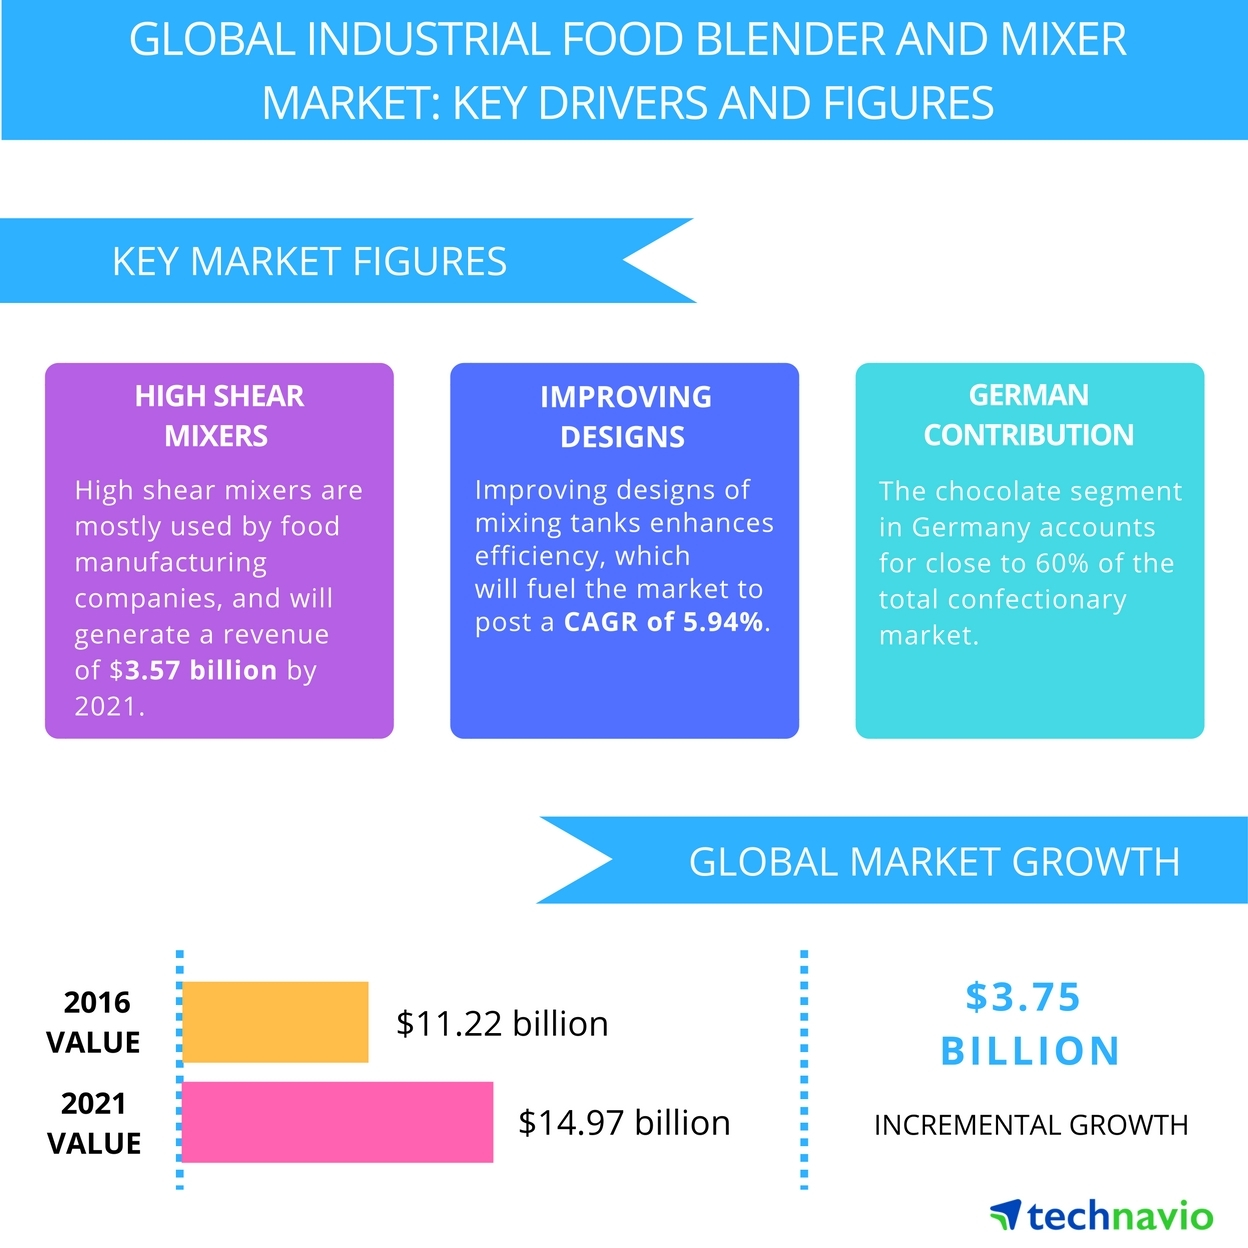 Top 5 Vendors in the Industrial Food Blender and Mixer